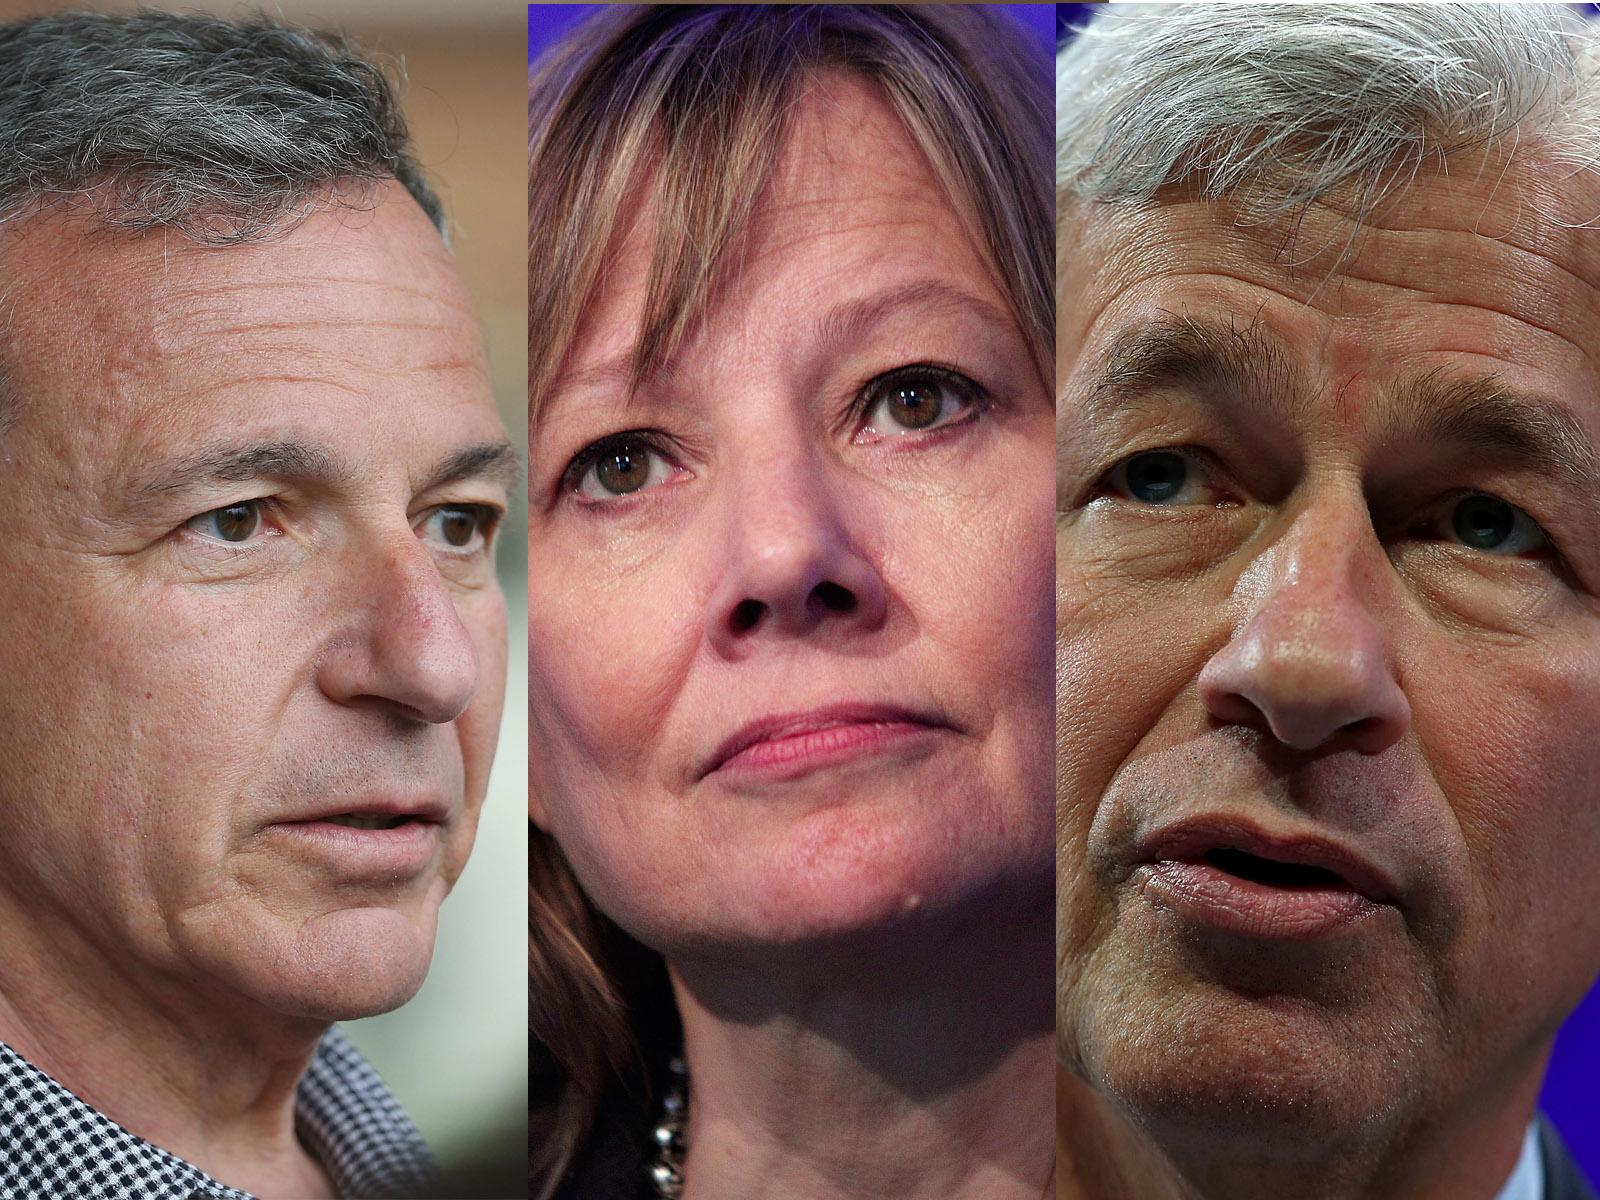 Trump is forming an economic advisory team with the CEOs of Disney, General Motors, JPMorgan, and more